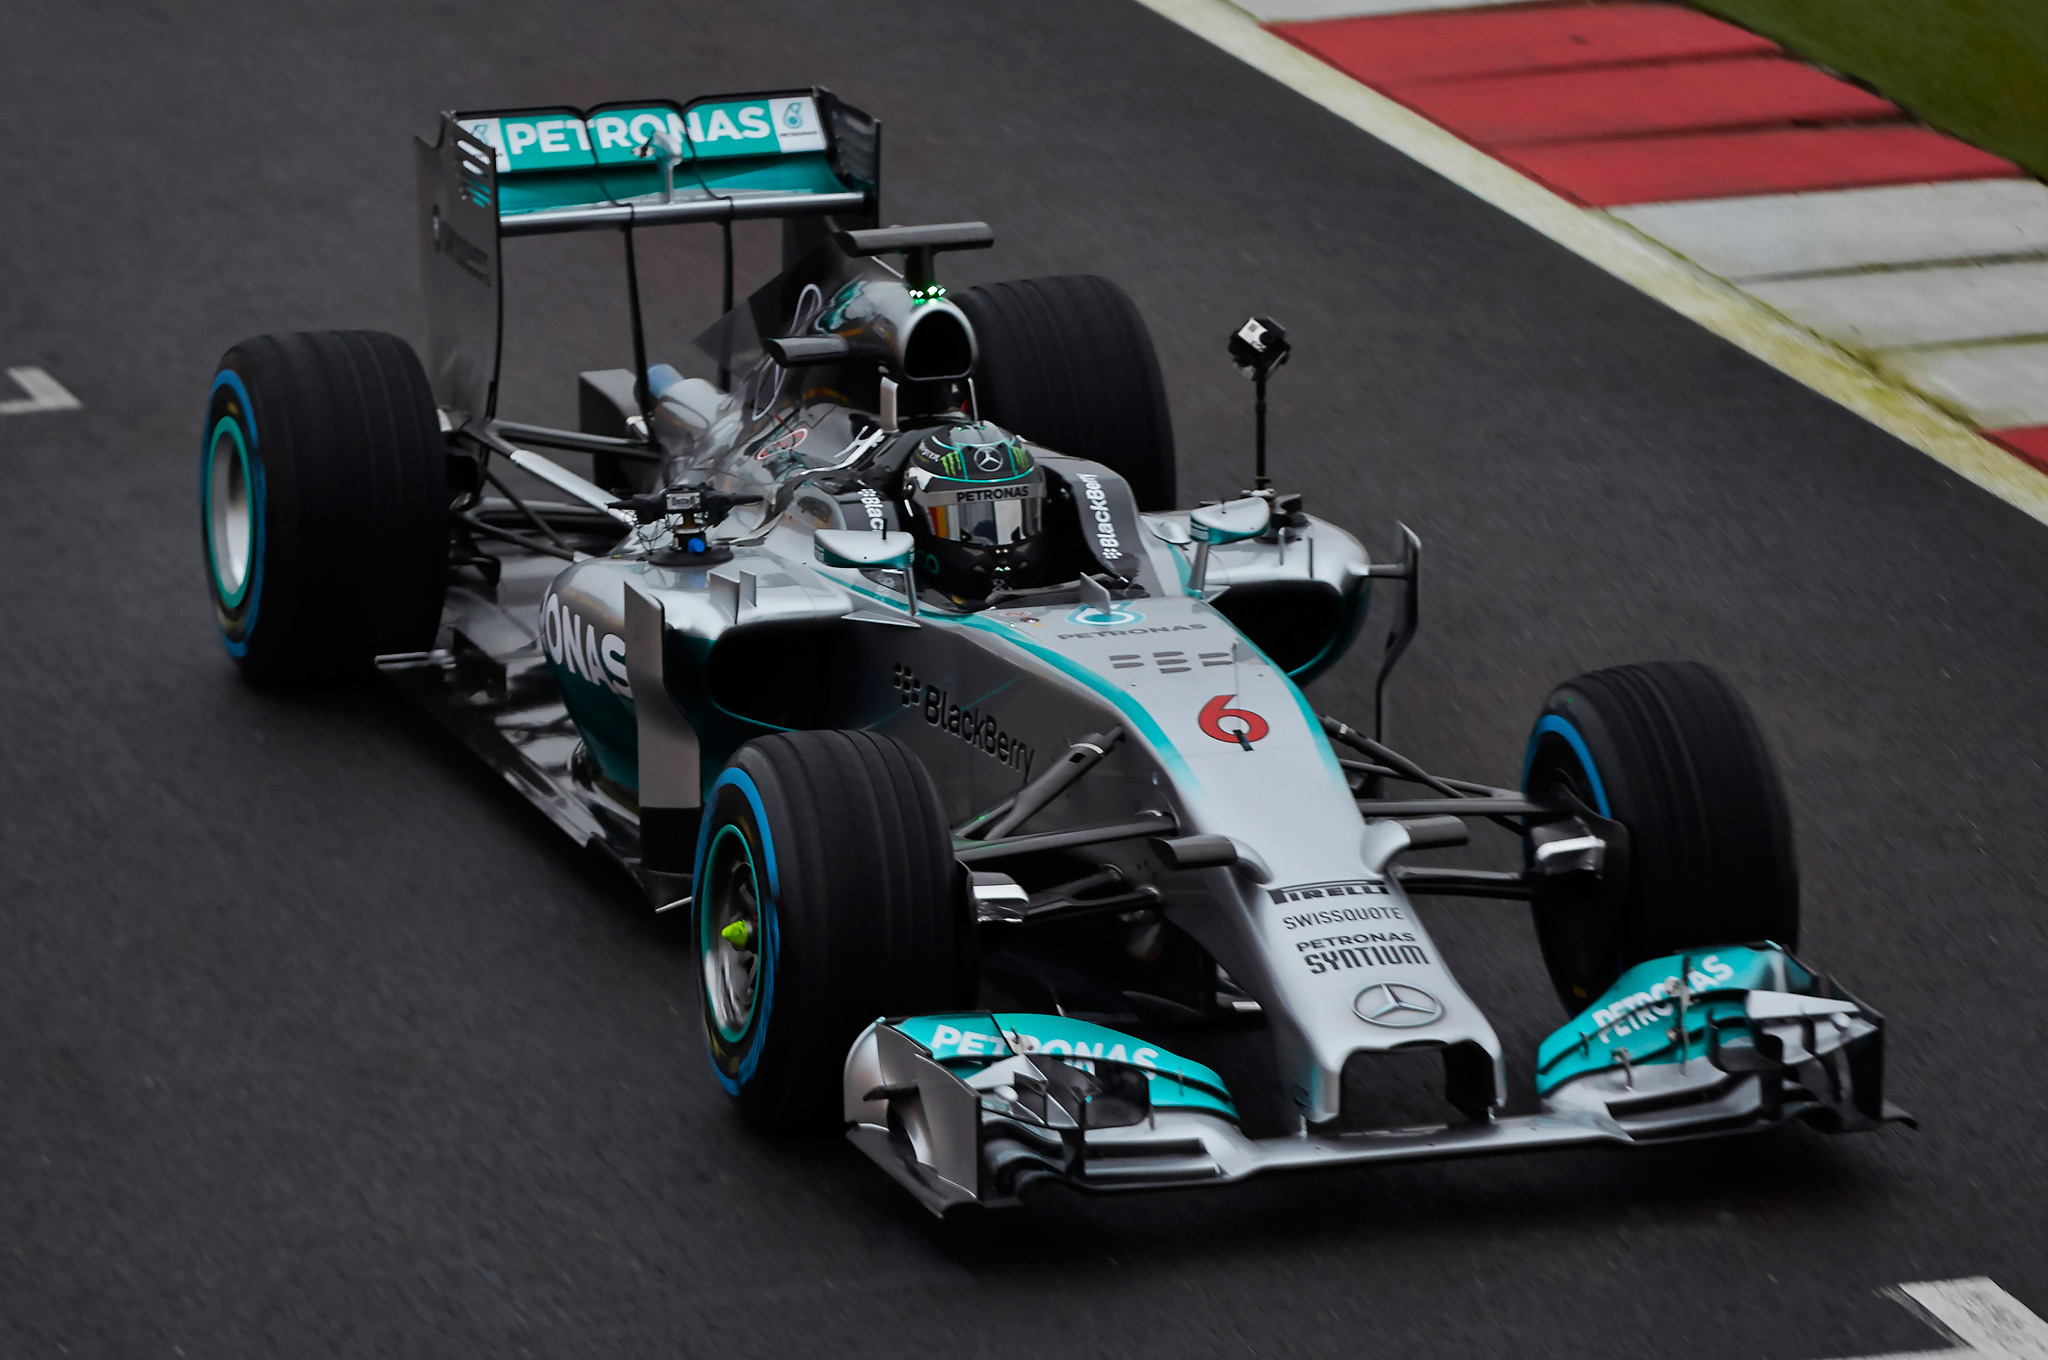 Mercedes 360-Degree Videos Give New Perspective on Formula 1 - Motor ...